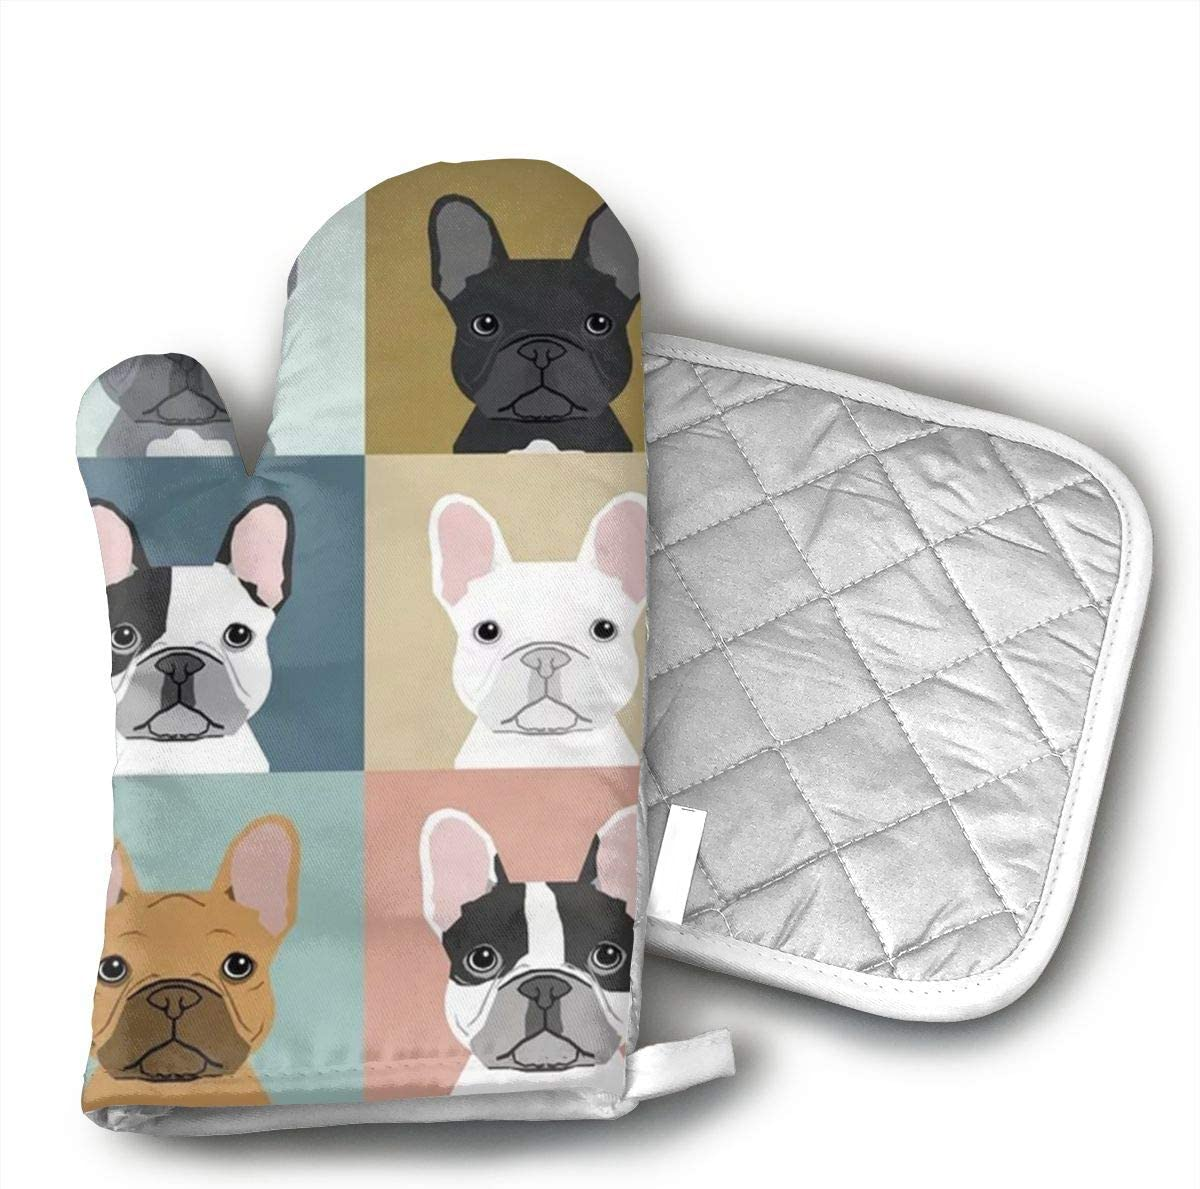 Klasl5 French Bulldogs Dog Oven Mitts,Heat Resistant Oven Gloves,Non-Slip Cooking Gloves,Washable Kitchen Mitts for Baking, Barbecue.